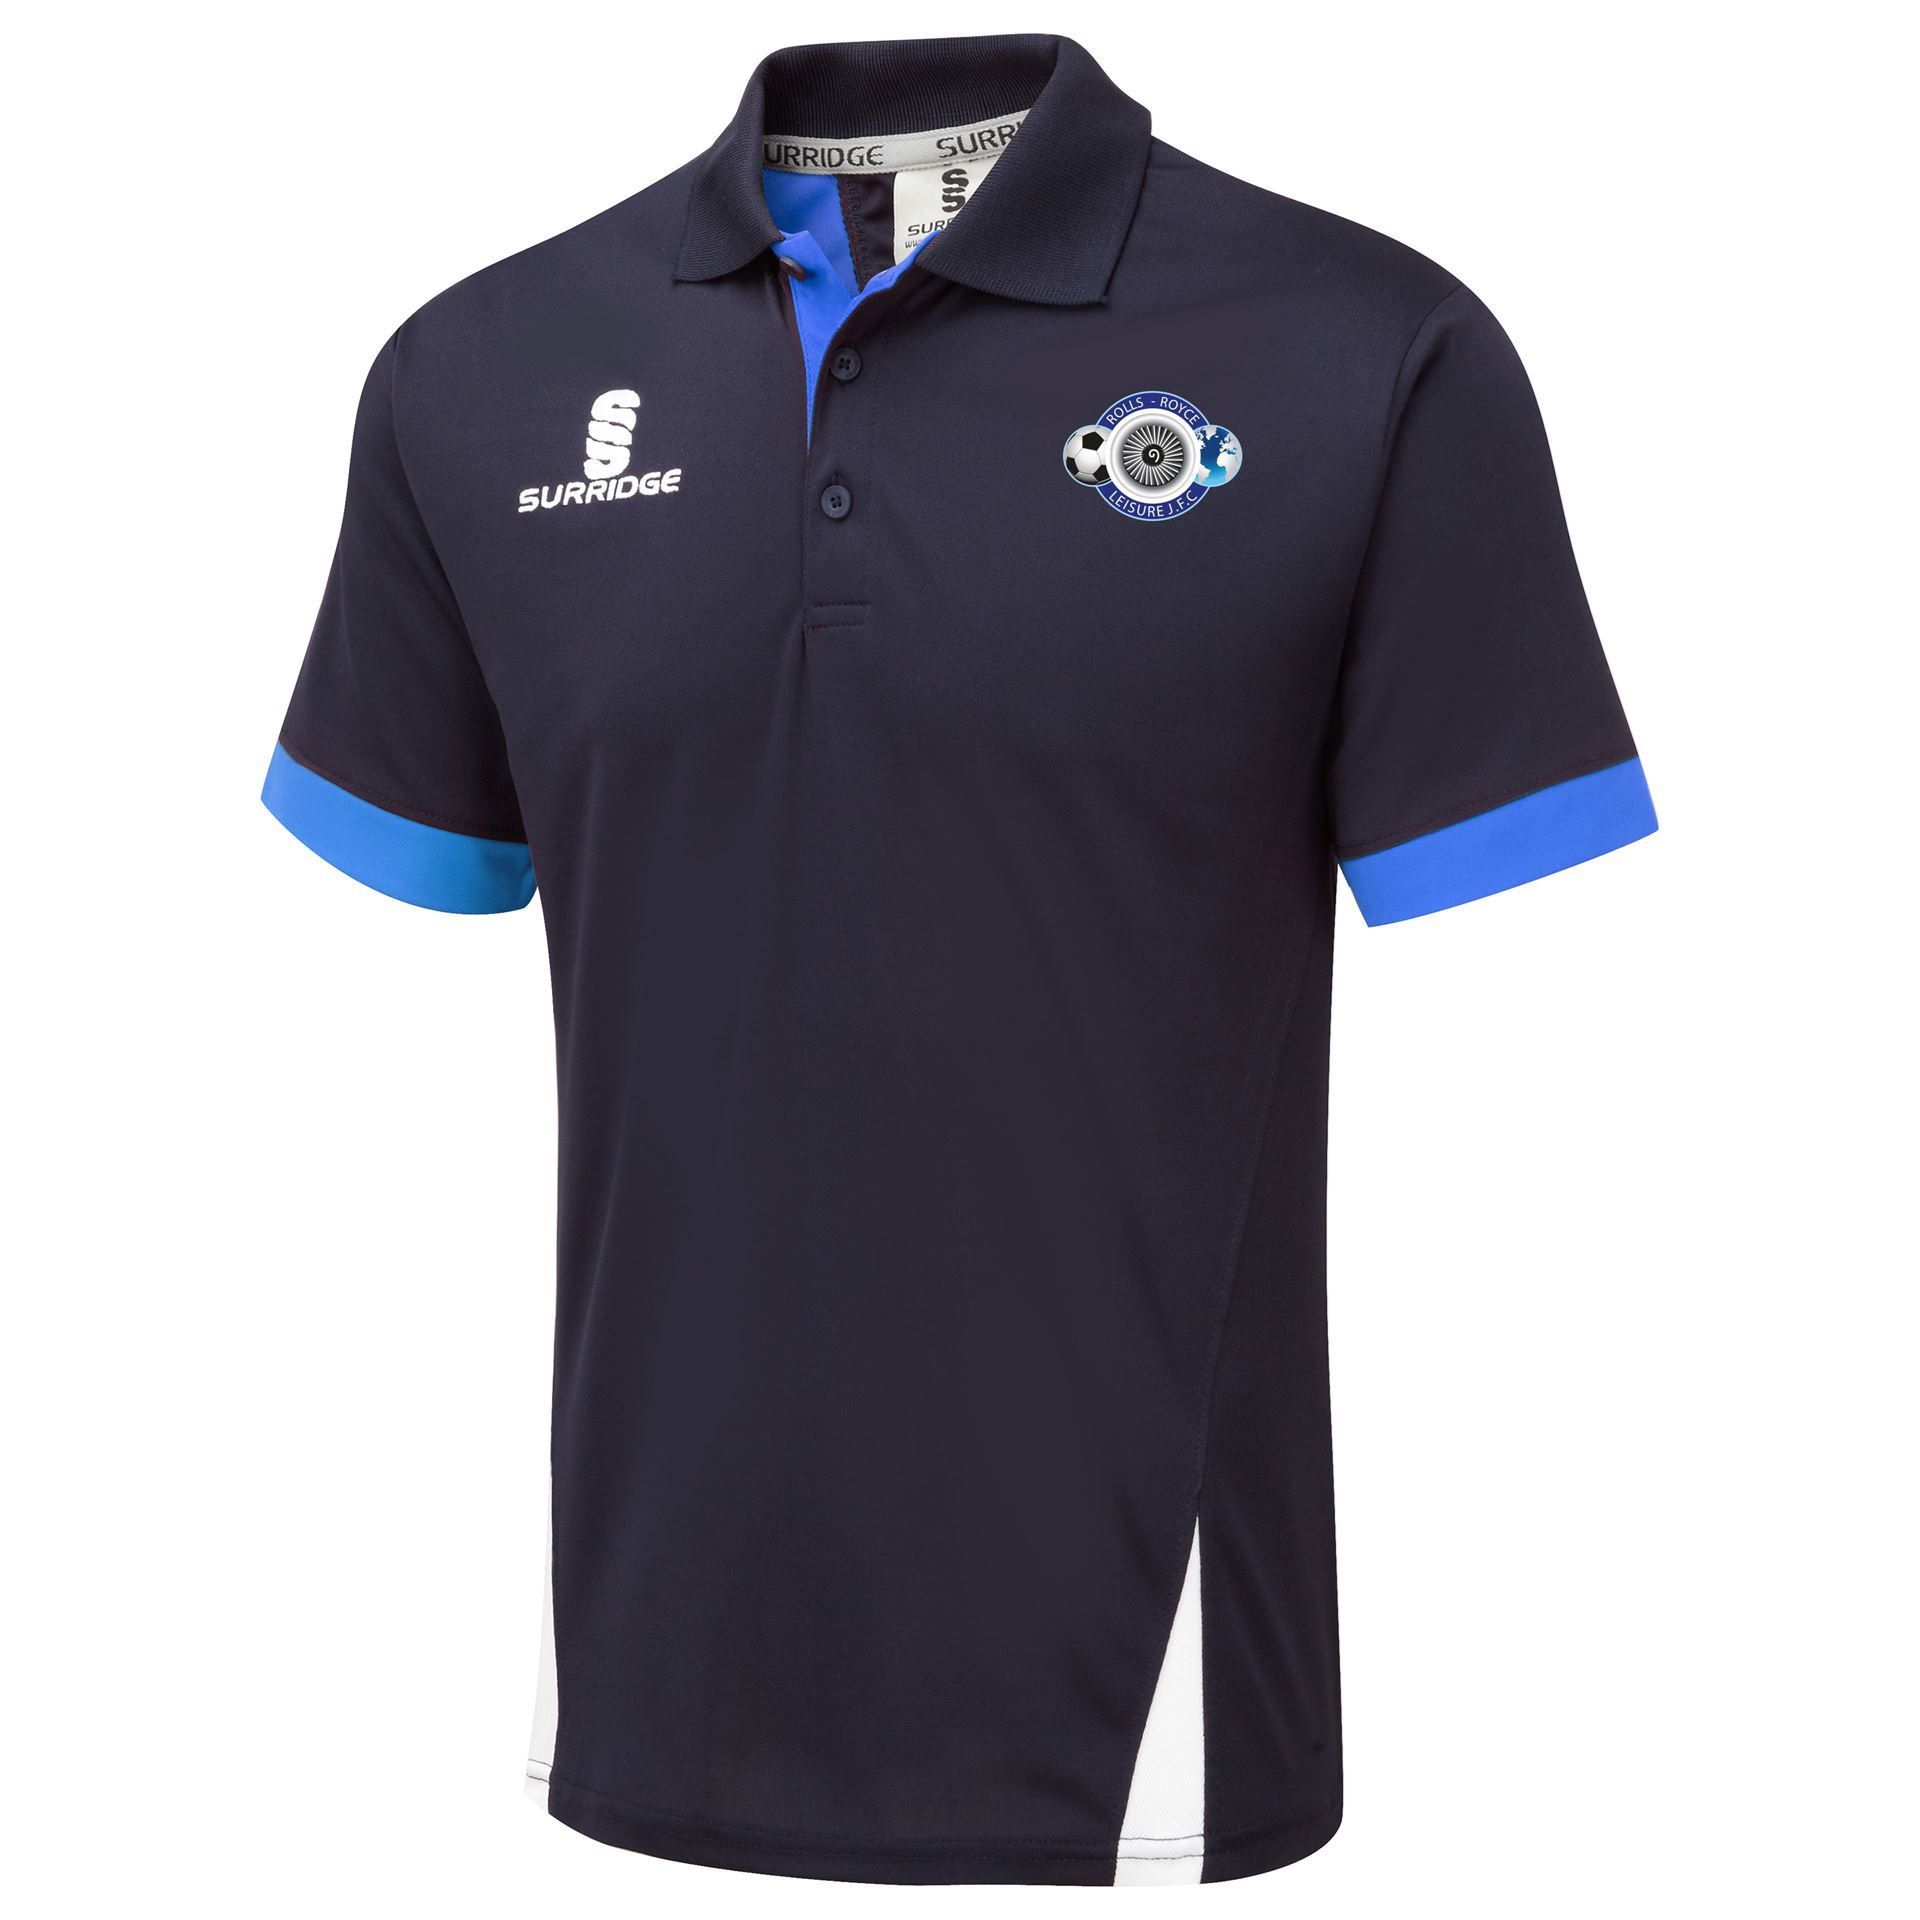 durable service online here sneakers Rolls-Royce Leisure JFC Polo Shirt